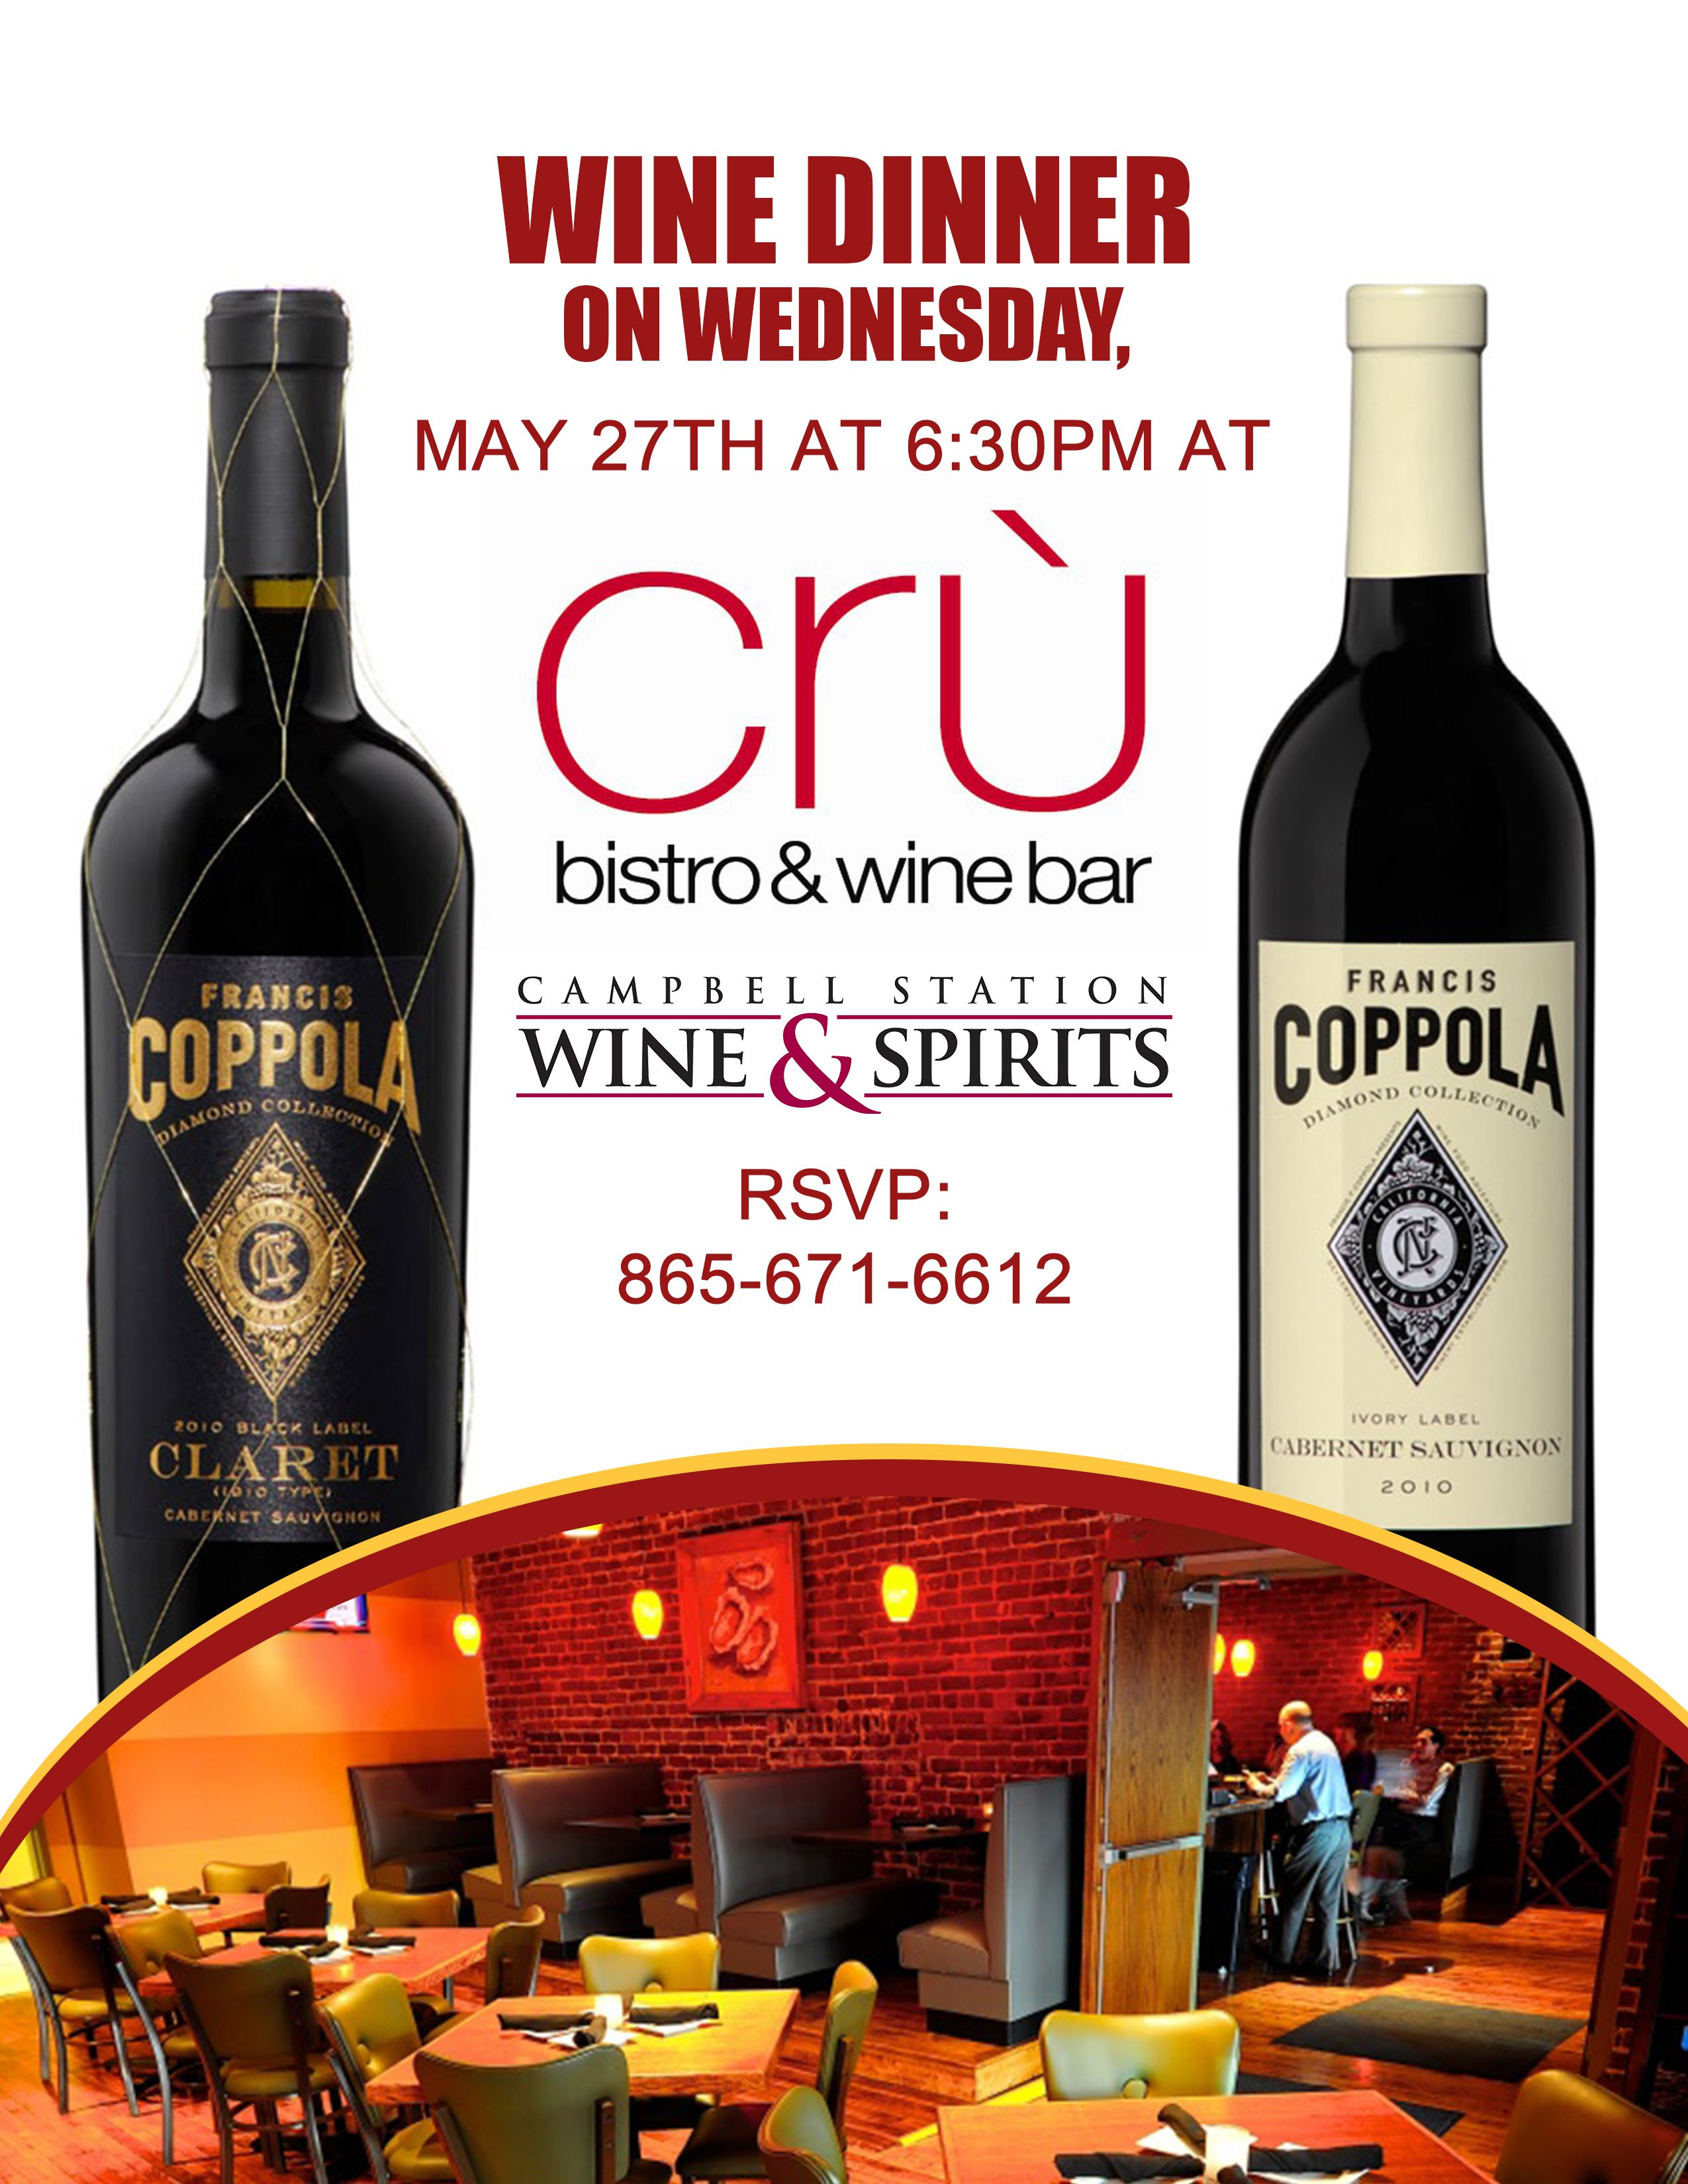 Mark Your Calendars Join Us For An Exquisite Wine Dinner On Wednesday May 27th At 6 30pm At Cru Bistro Wine Bar We L Wine Dinner Wine Bar Wine And Spirits